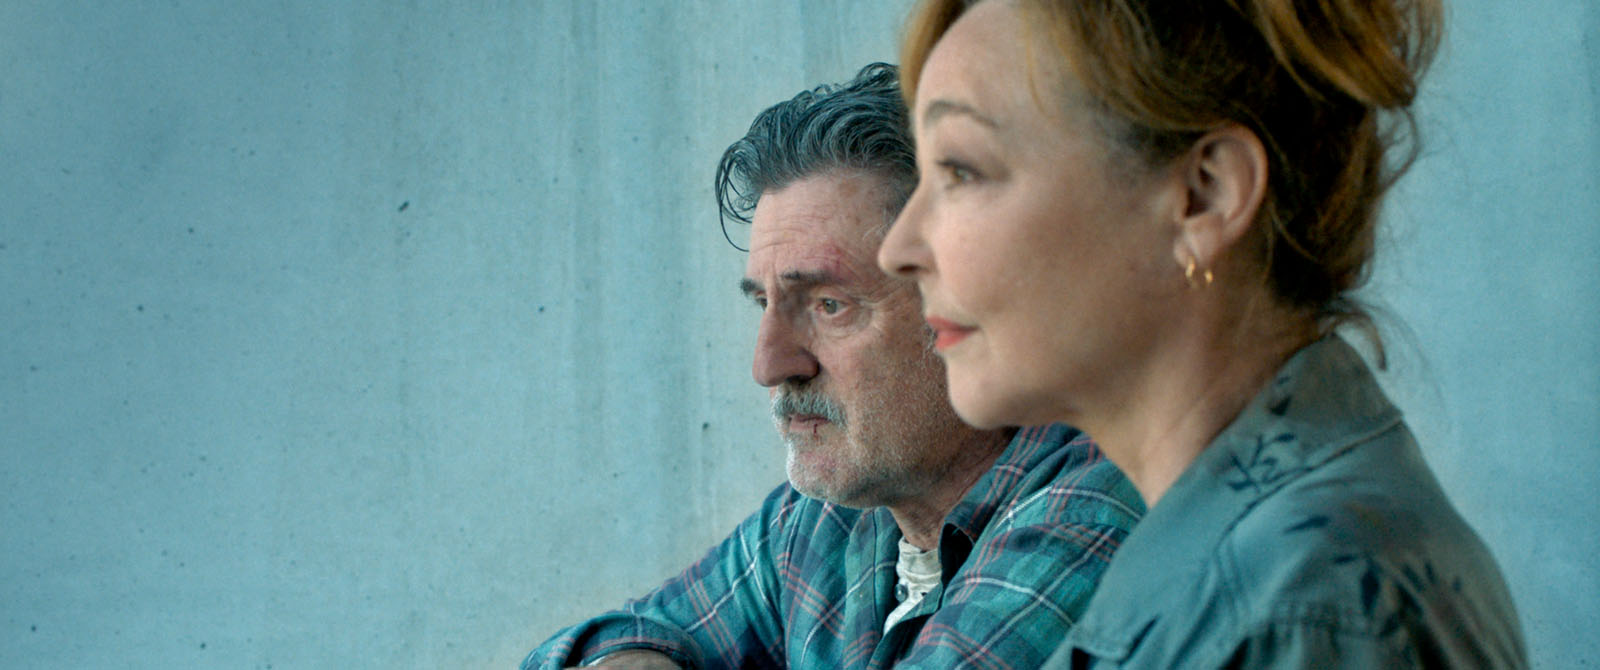 Daniel Auteuil and Catherine Frot in Qui m'aime me suive! (2019)